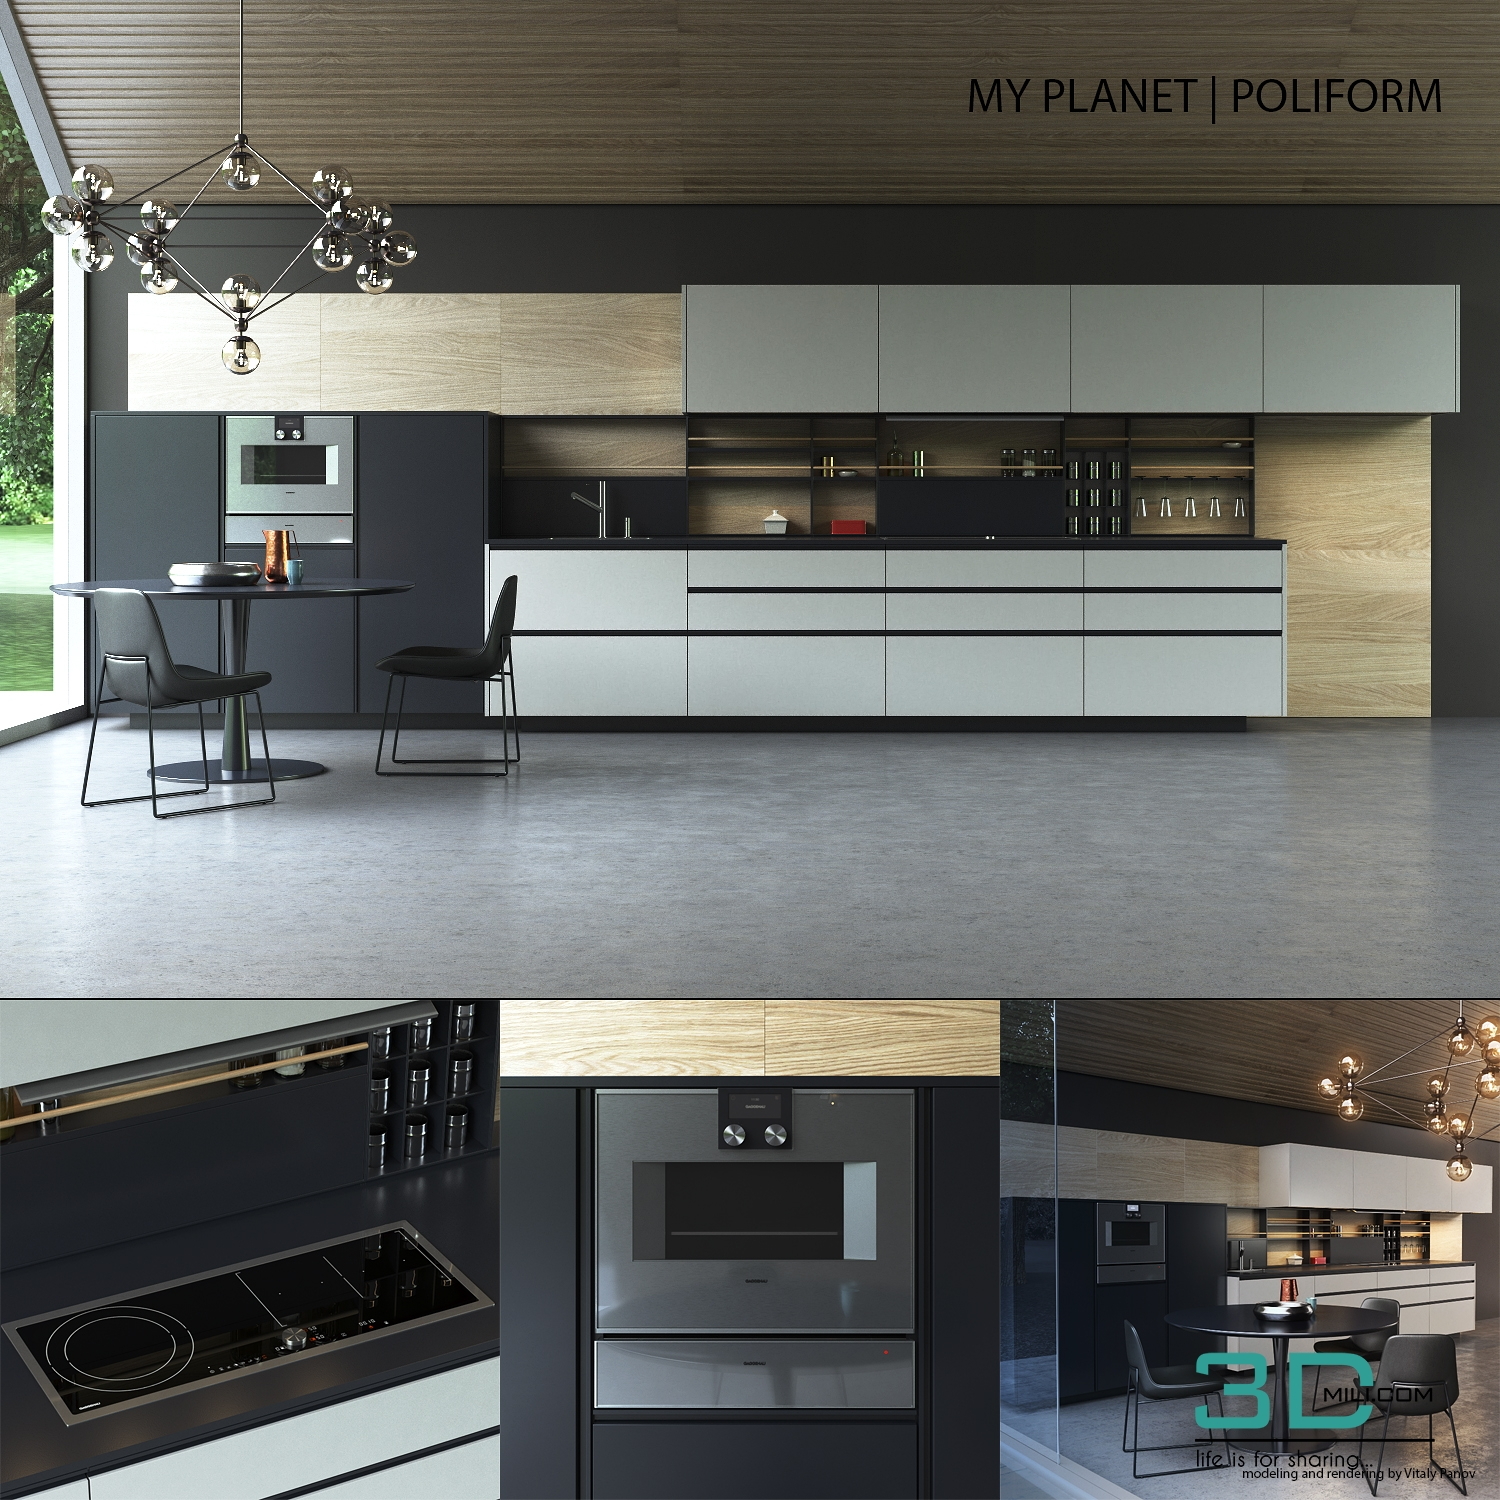 Kitchen Poliform Varenna My Planet 3d Mili Download 3d Model